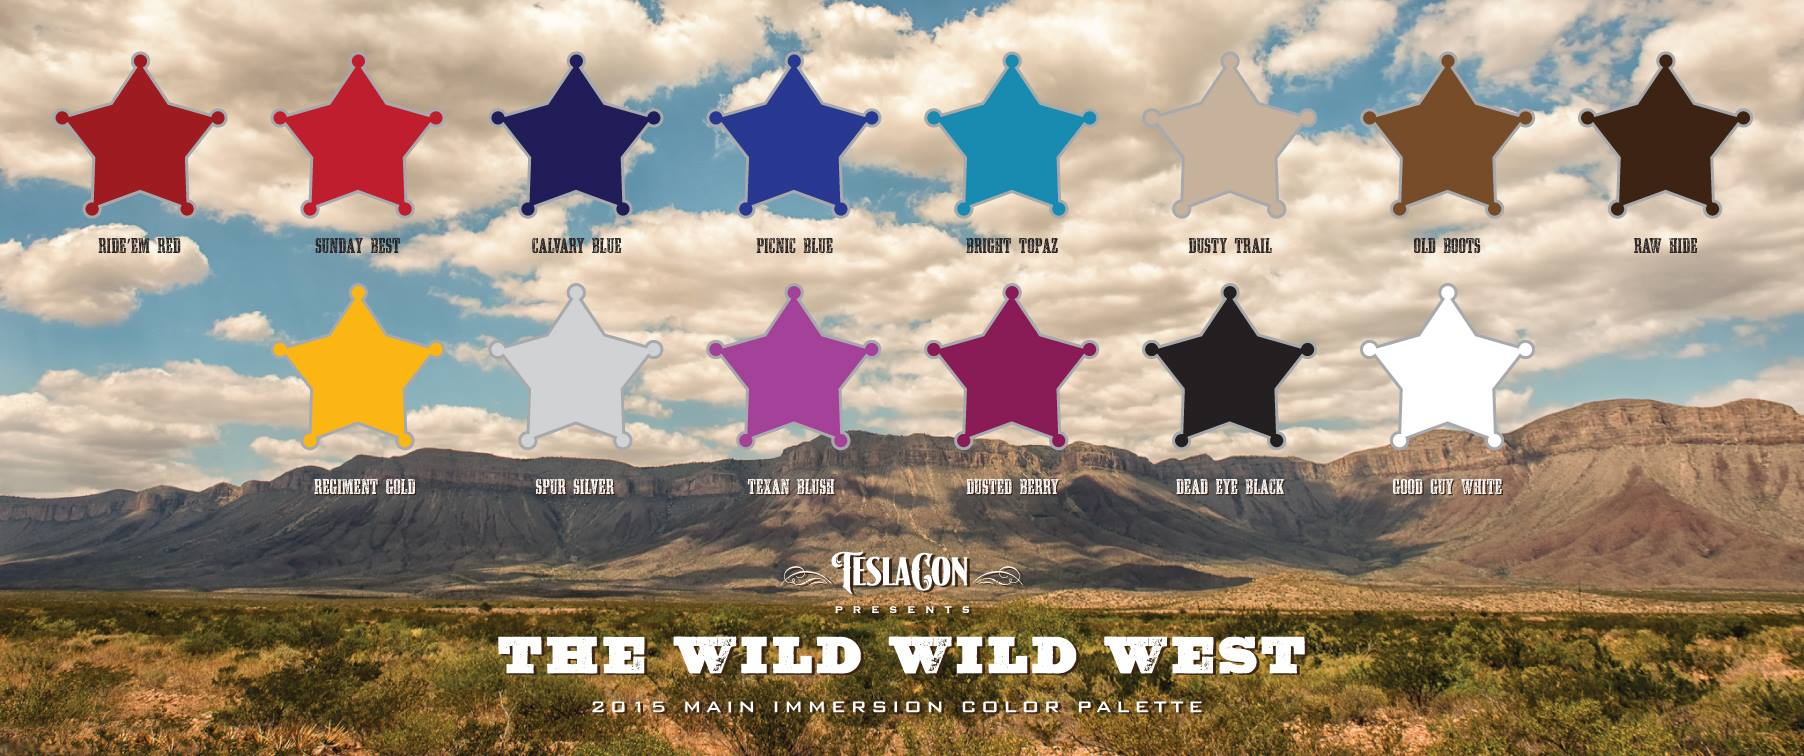 review airship ambassador page 2 On old west color palette